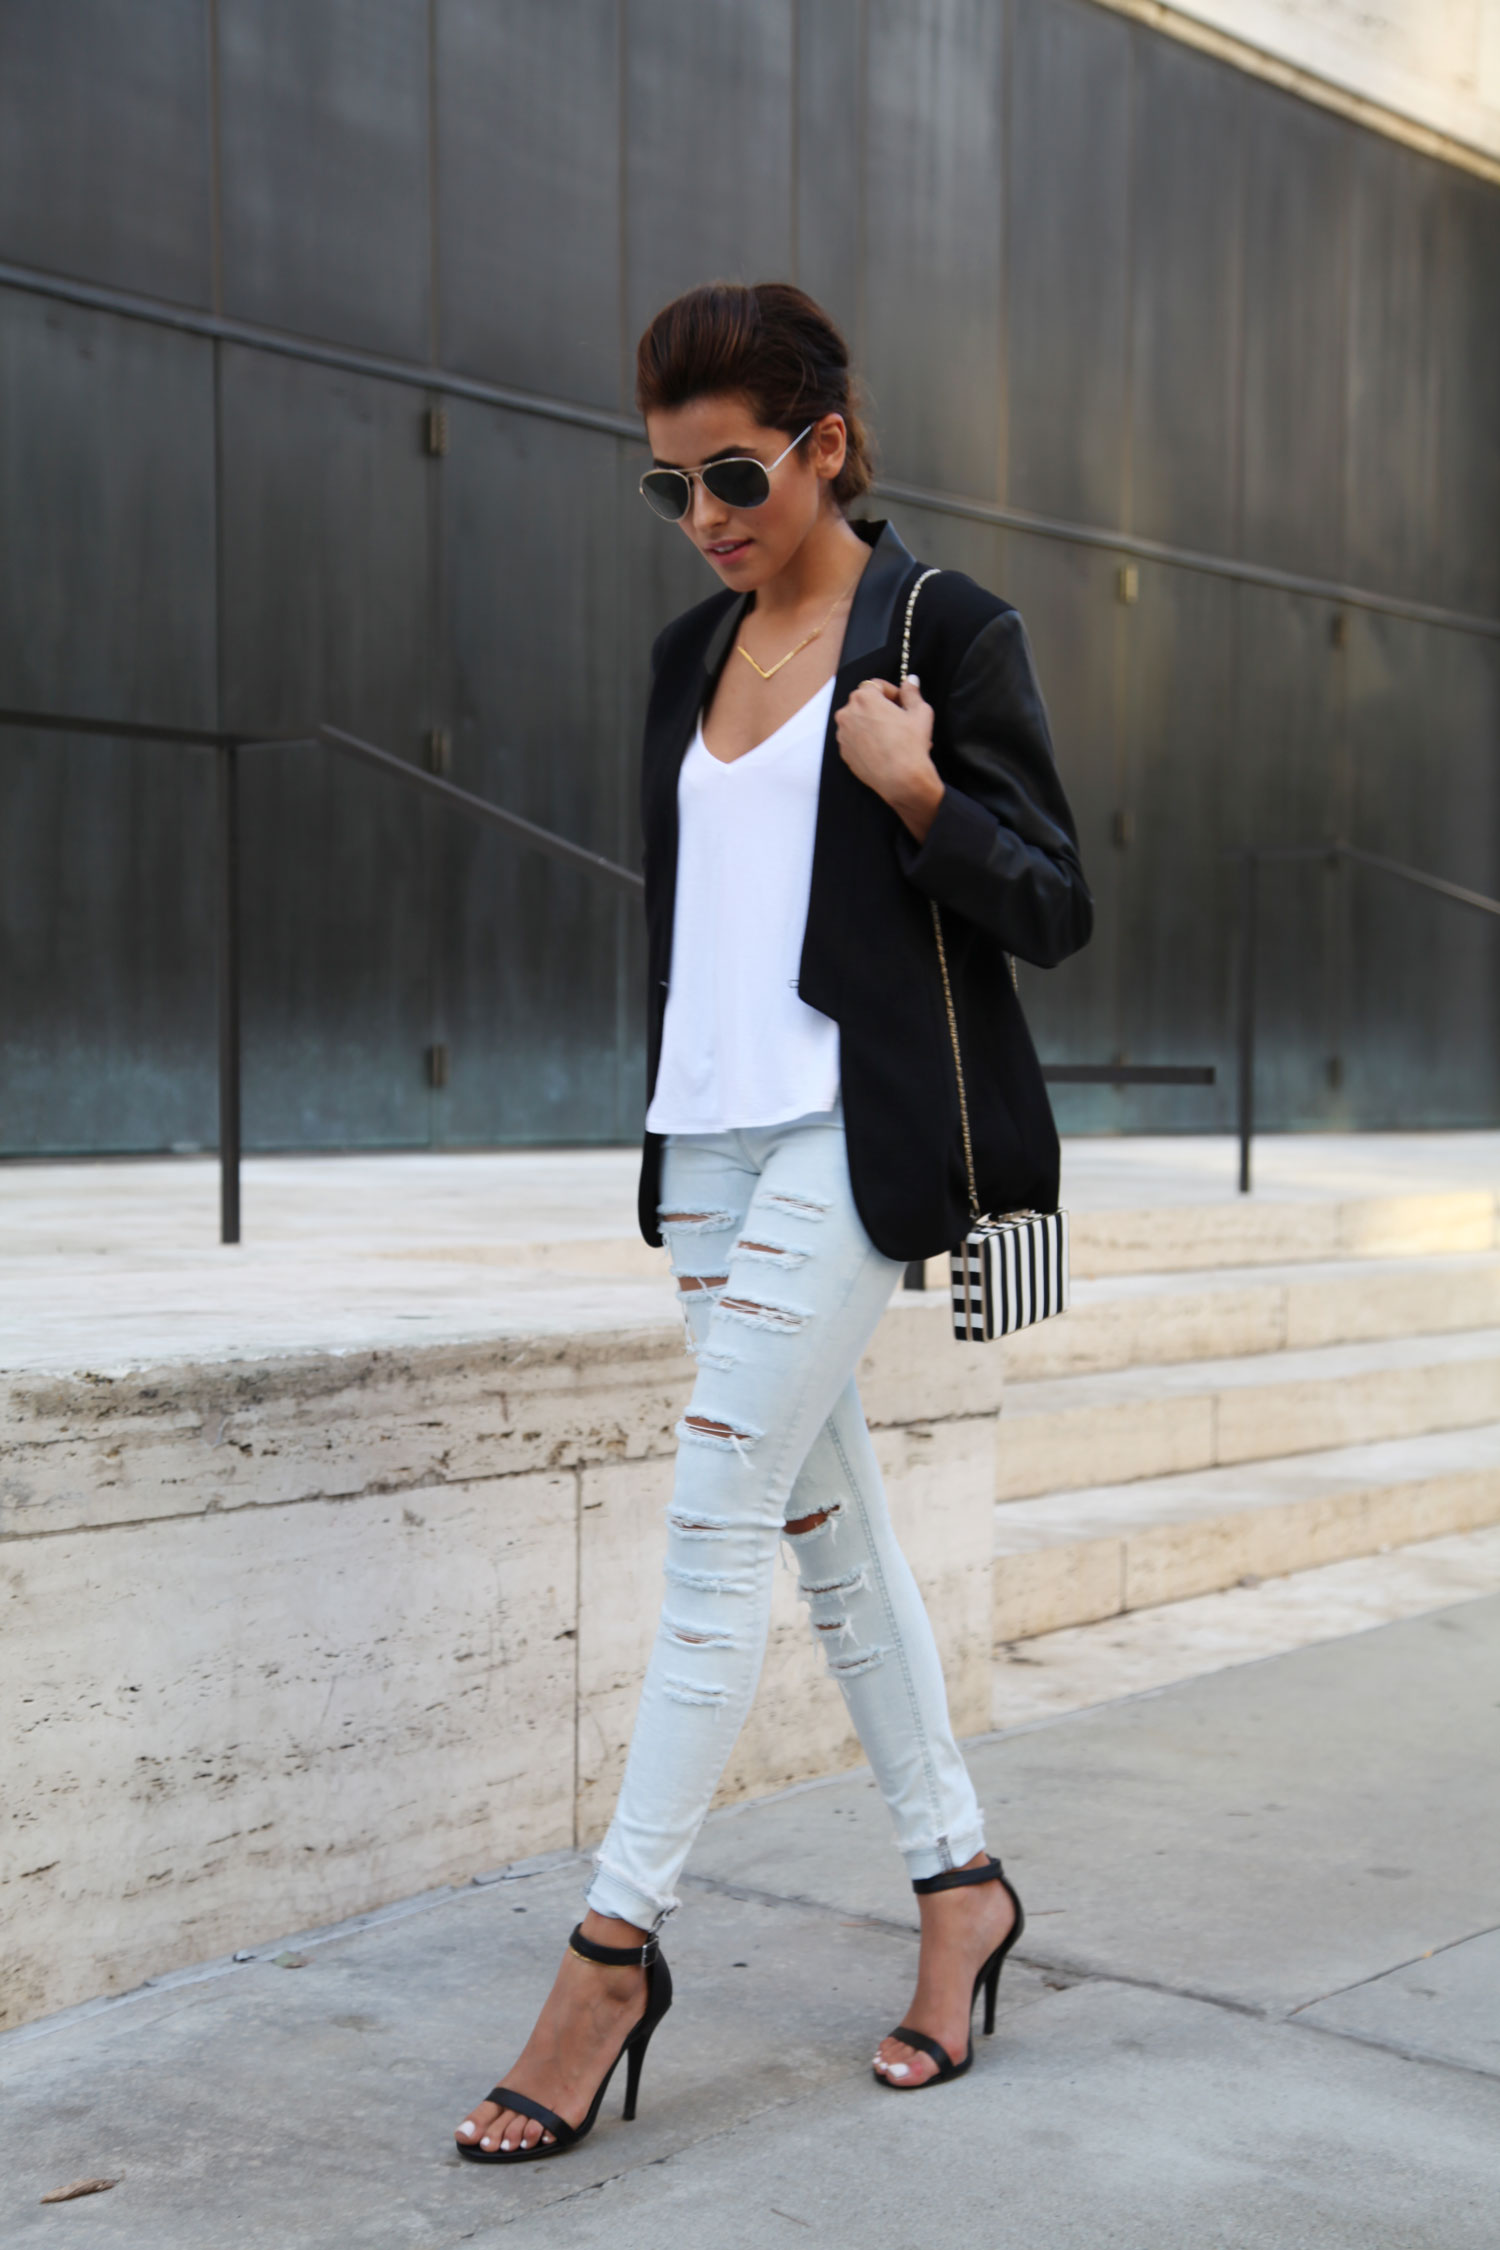 jeans fashion trends 25 Latest Skinny Jeans Fashion Trends for Summer 2015/16 25 Latest Skinny Jeans Fashion Trends for Summer 2015/16 jeans fashion trends